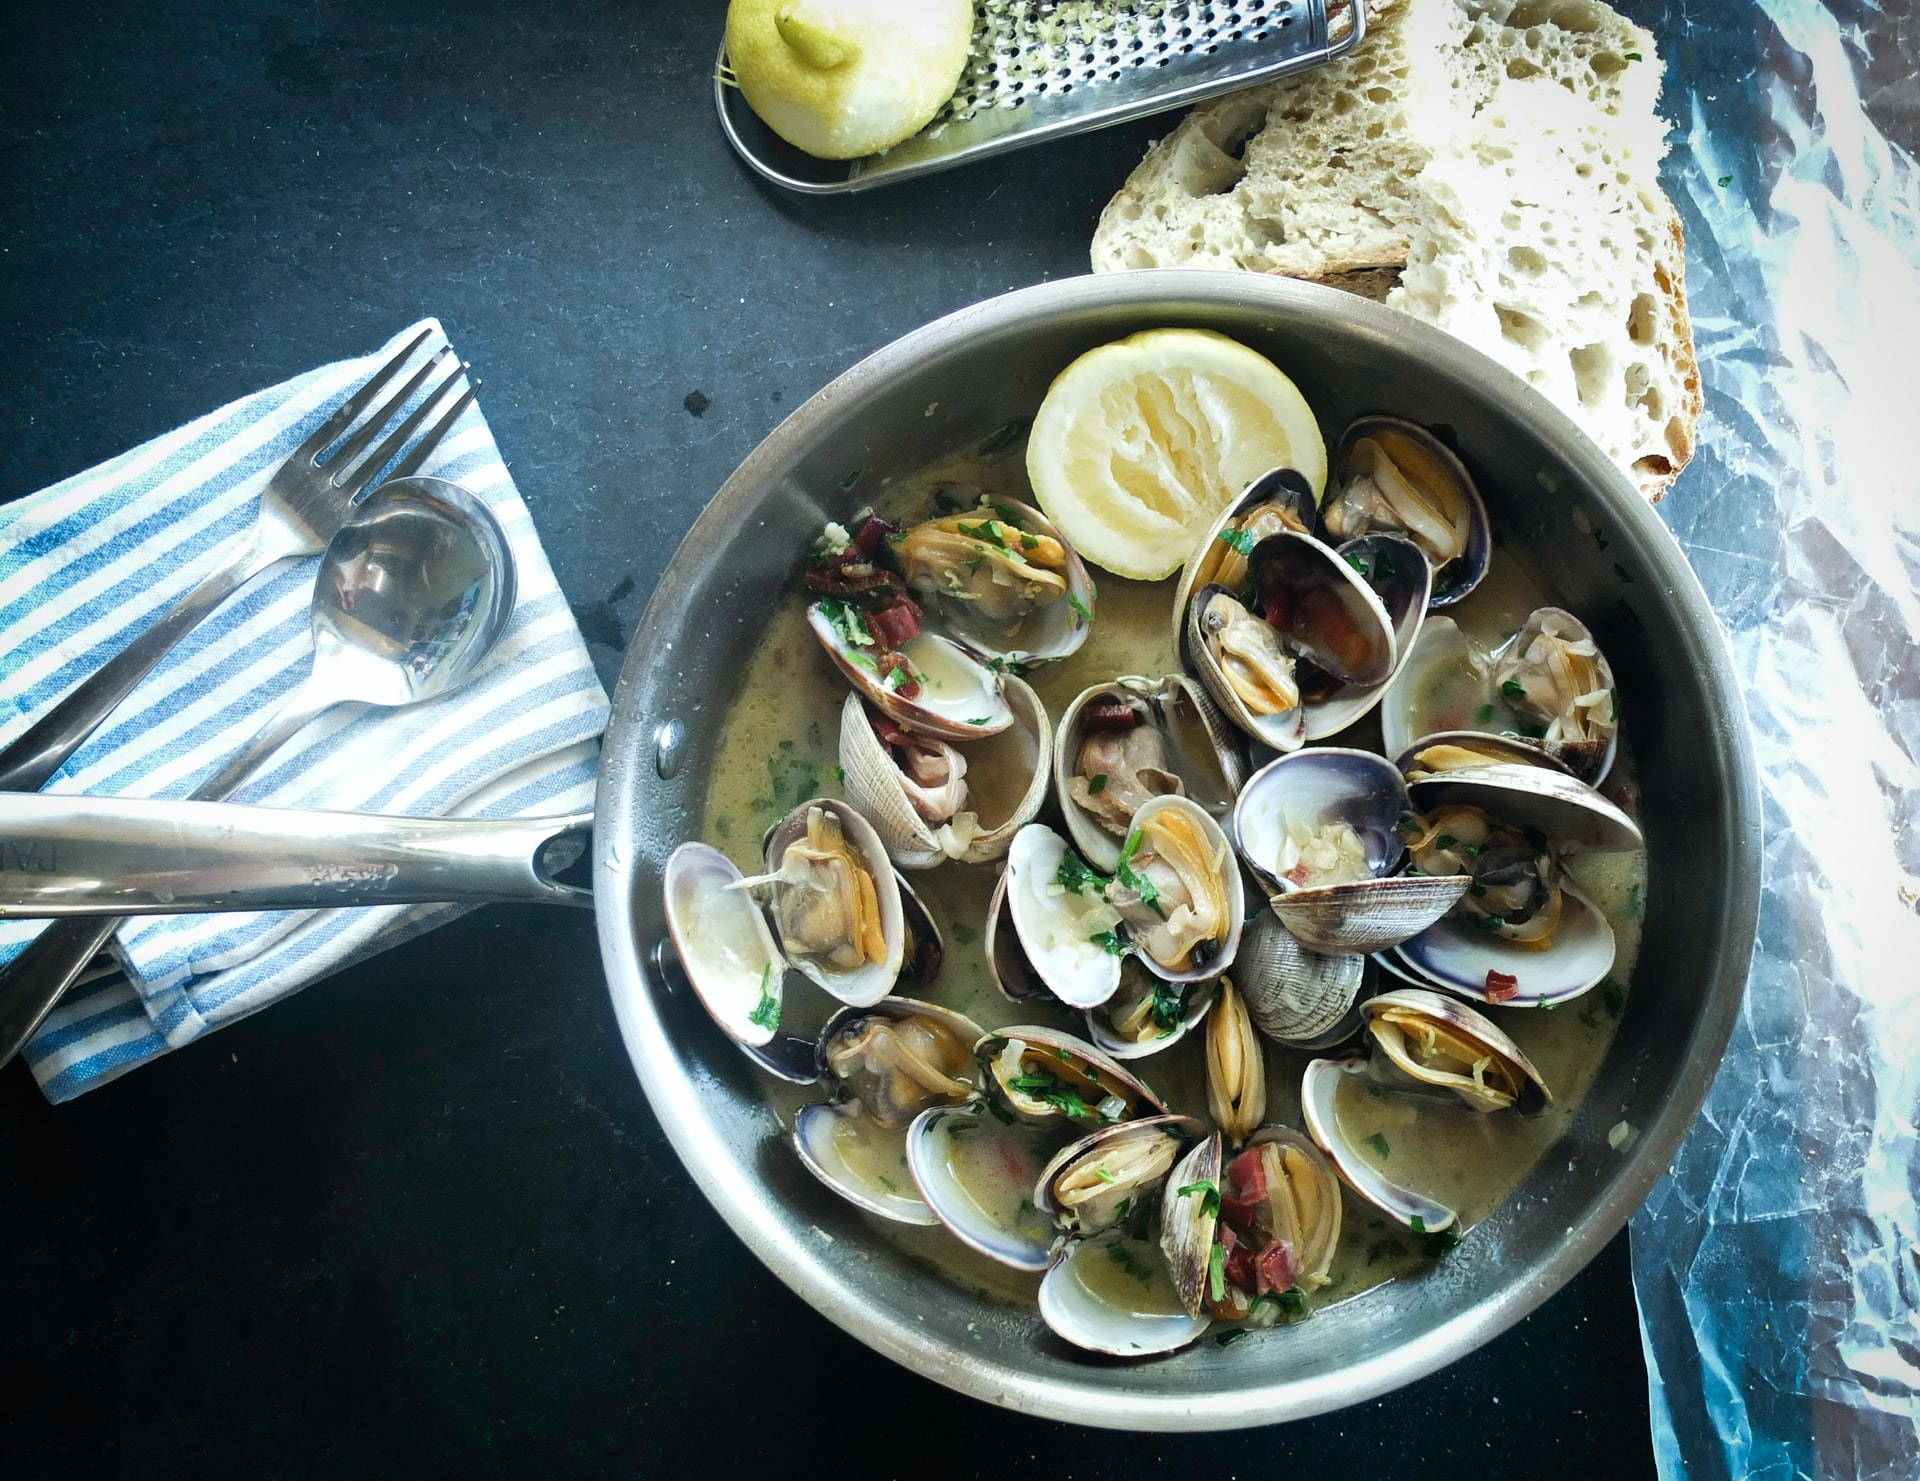 Truluck's Ocean's Finest Seafood & Crab Is a New Restaurant to Try Near Your Apartment in DC